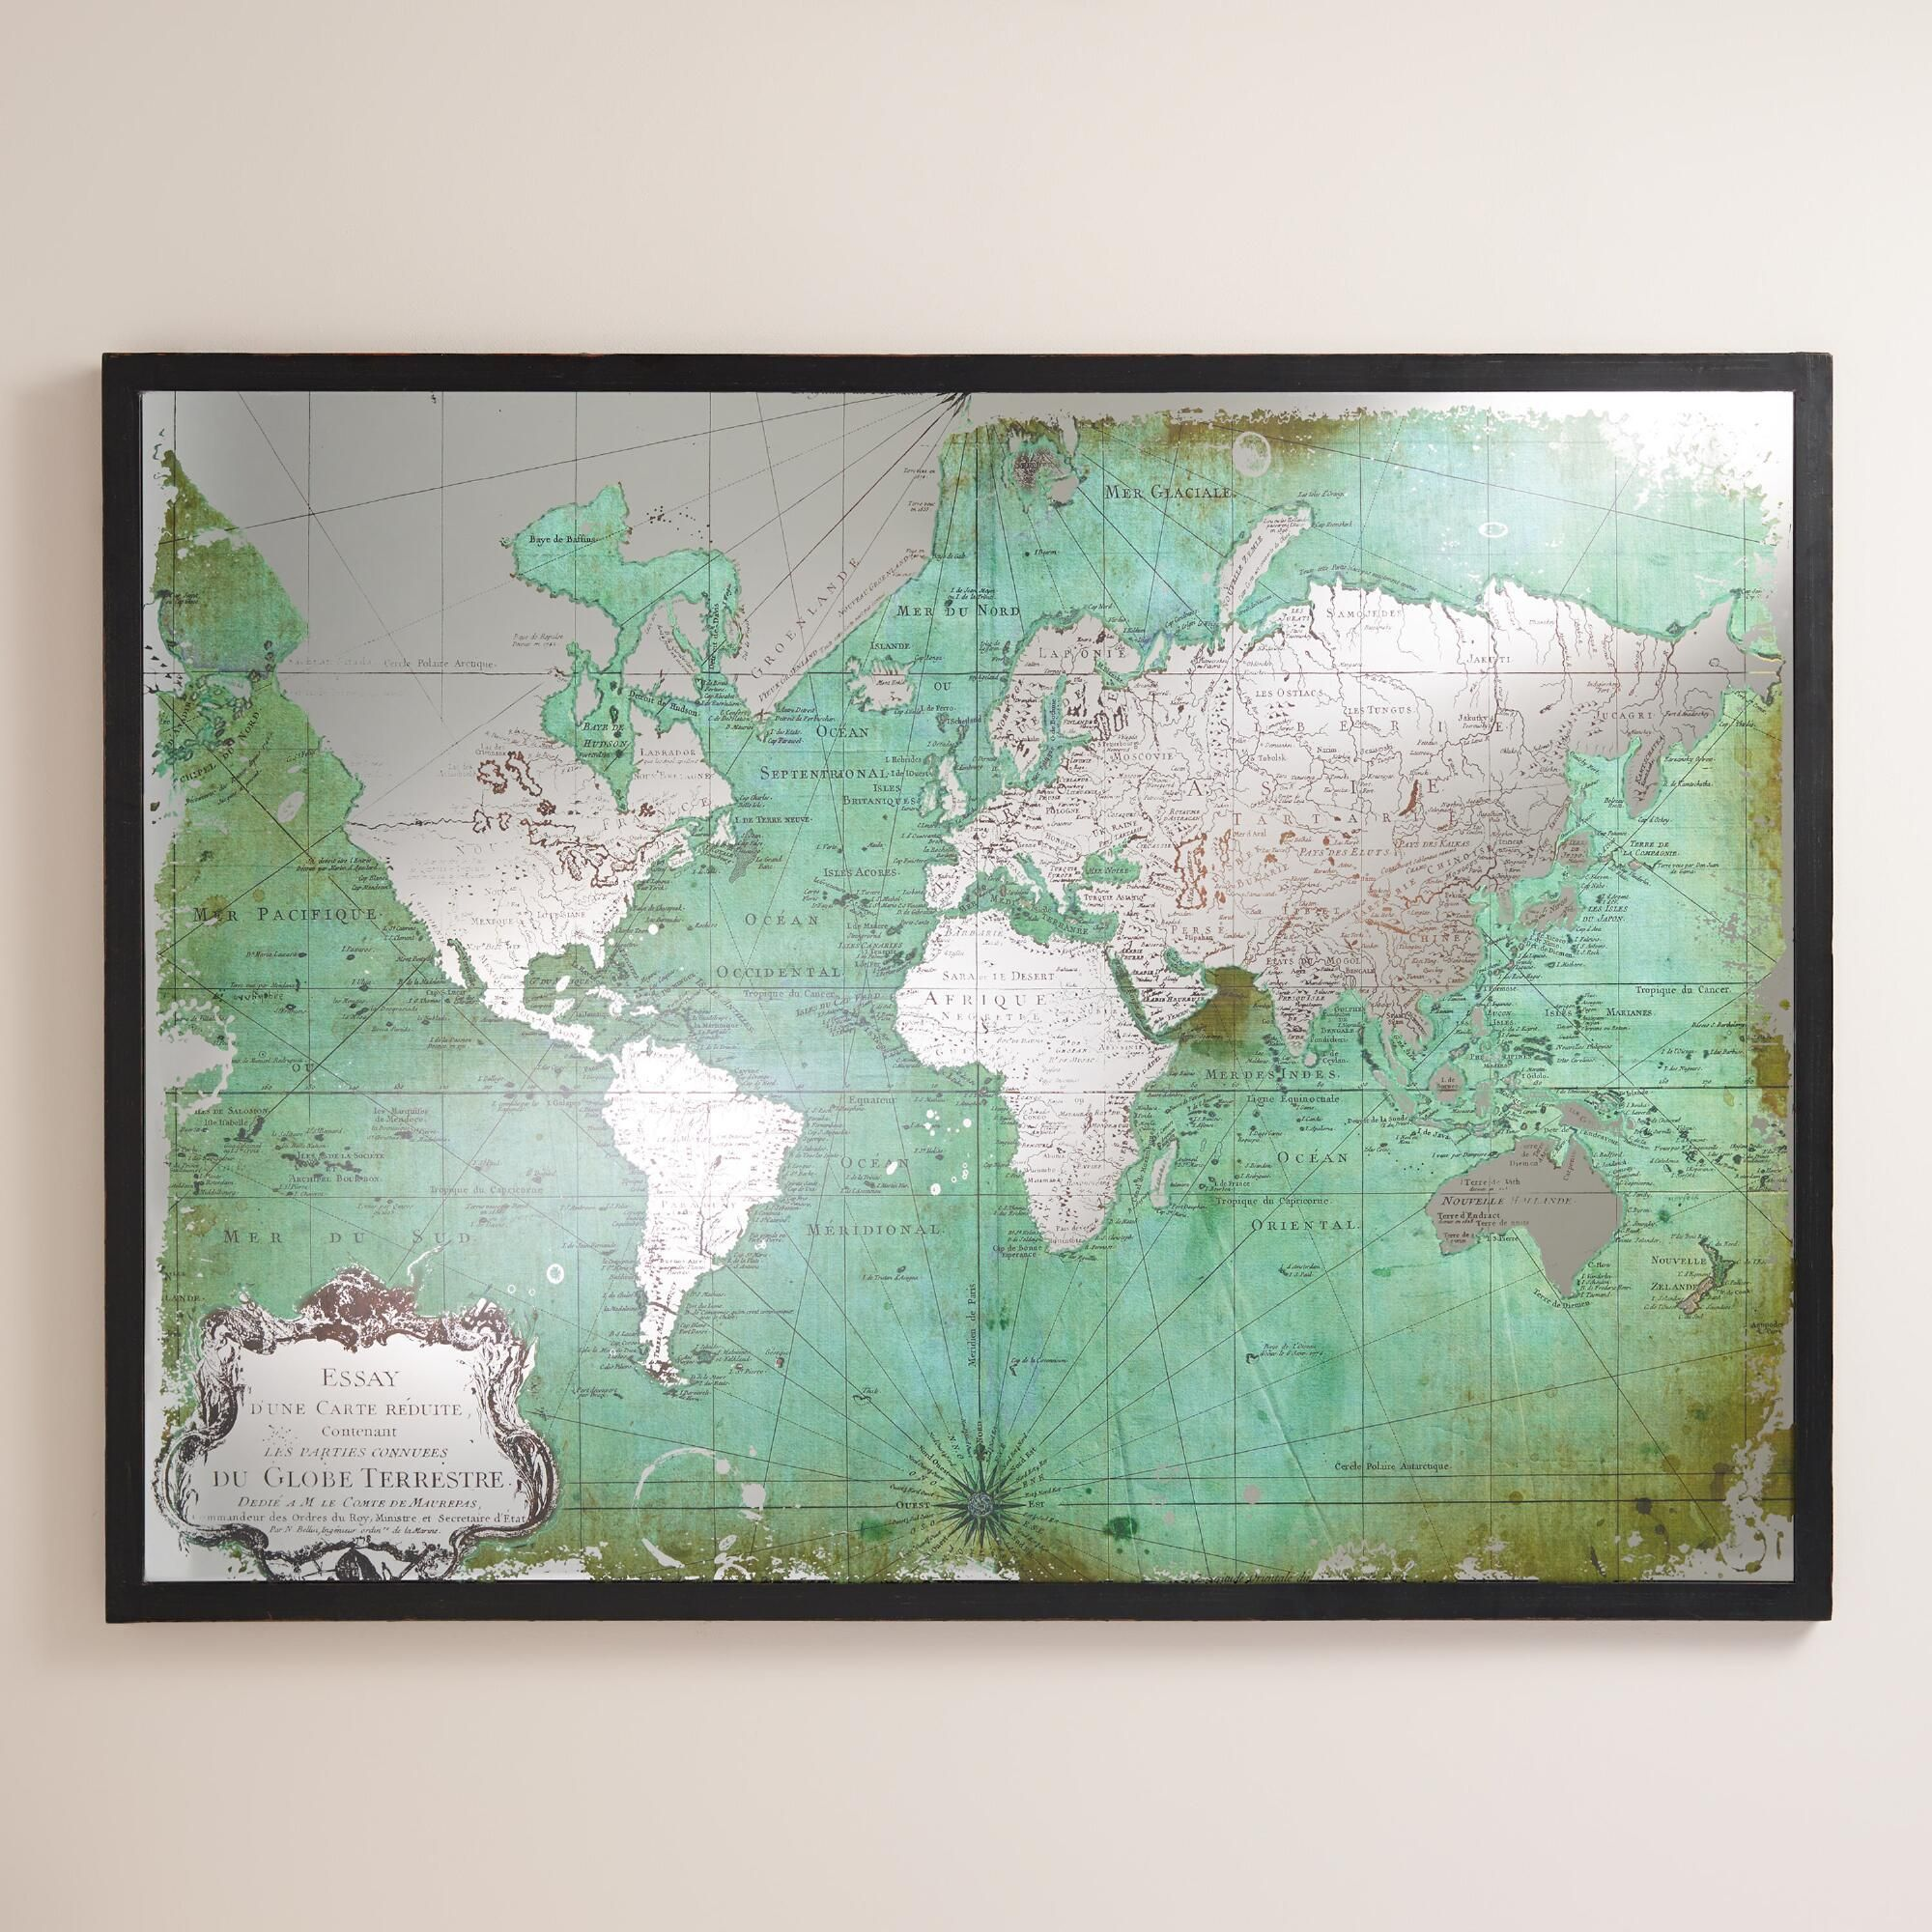 Art Wall Decor Our Antique Green World Map Is Printed On Mirrored Gl For Added Visual Intrigue A Simple Black Frame Completes The Look